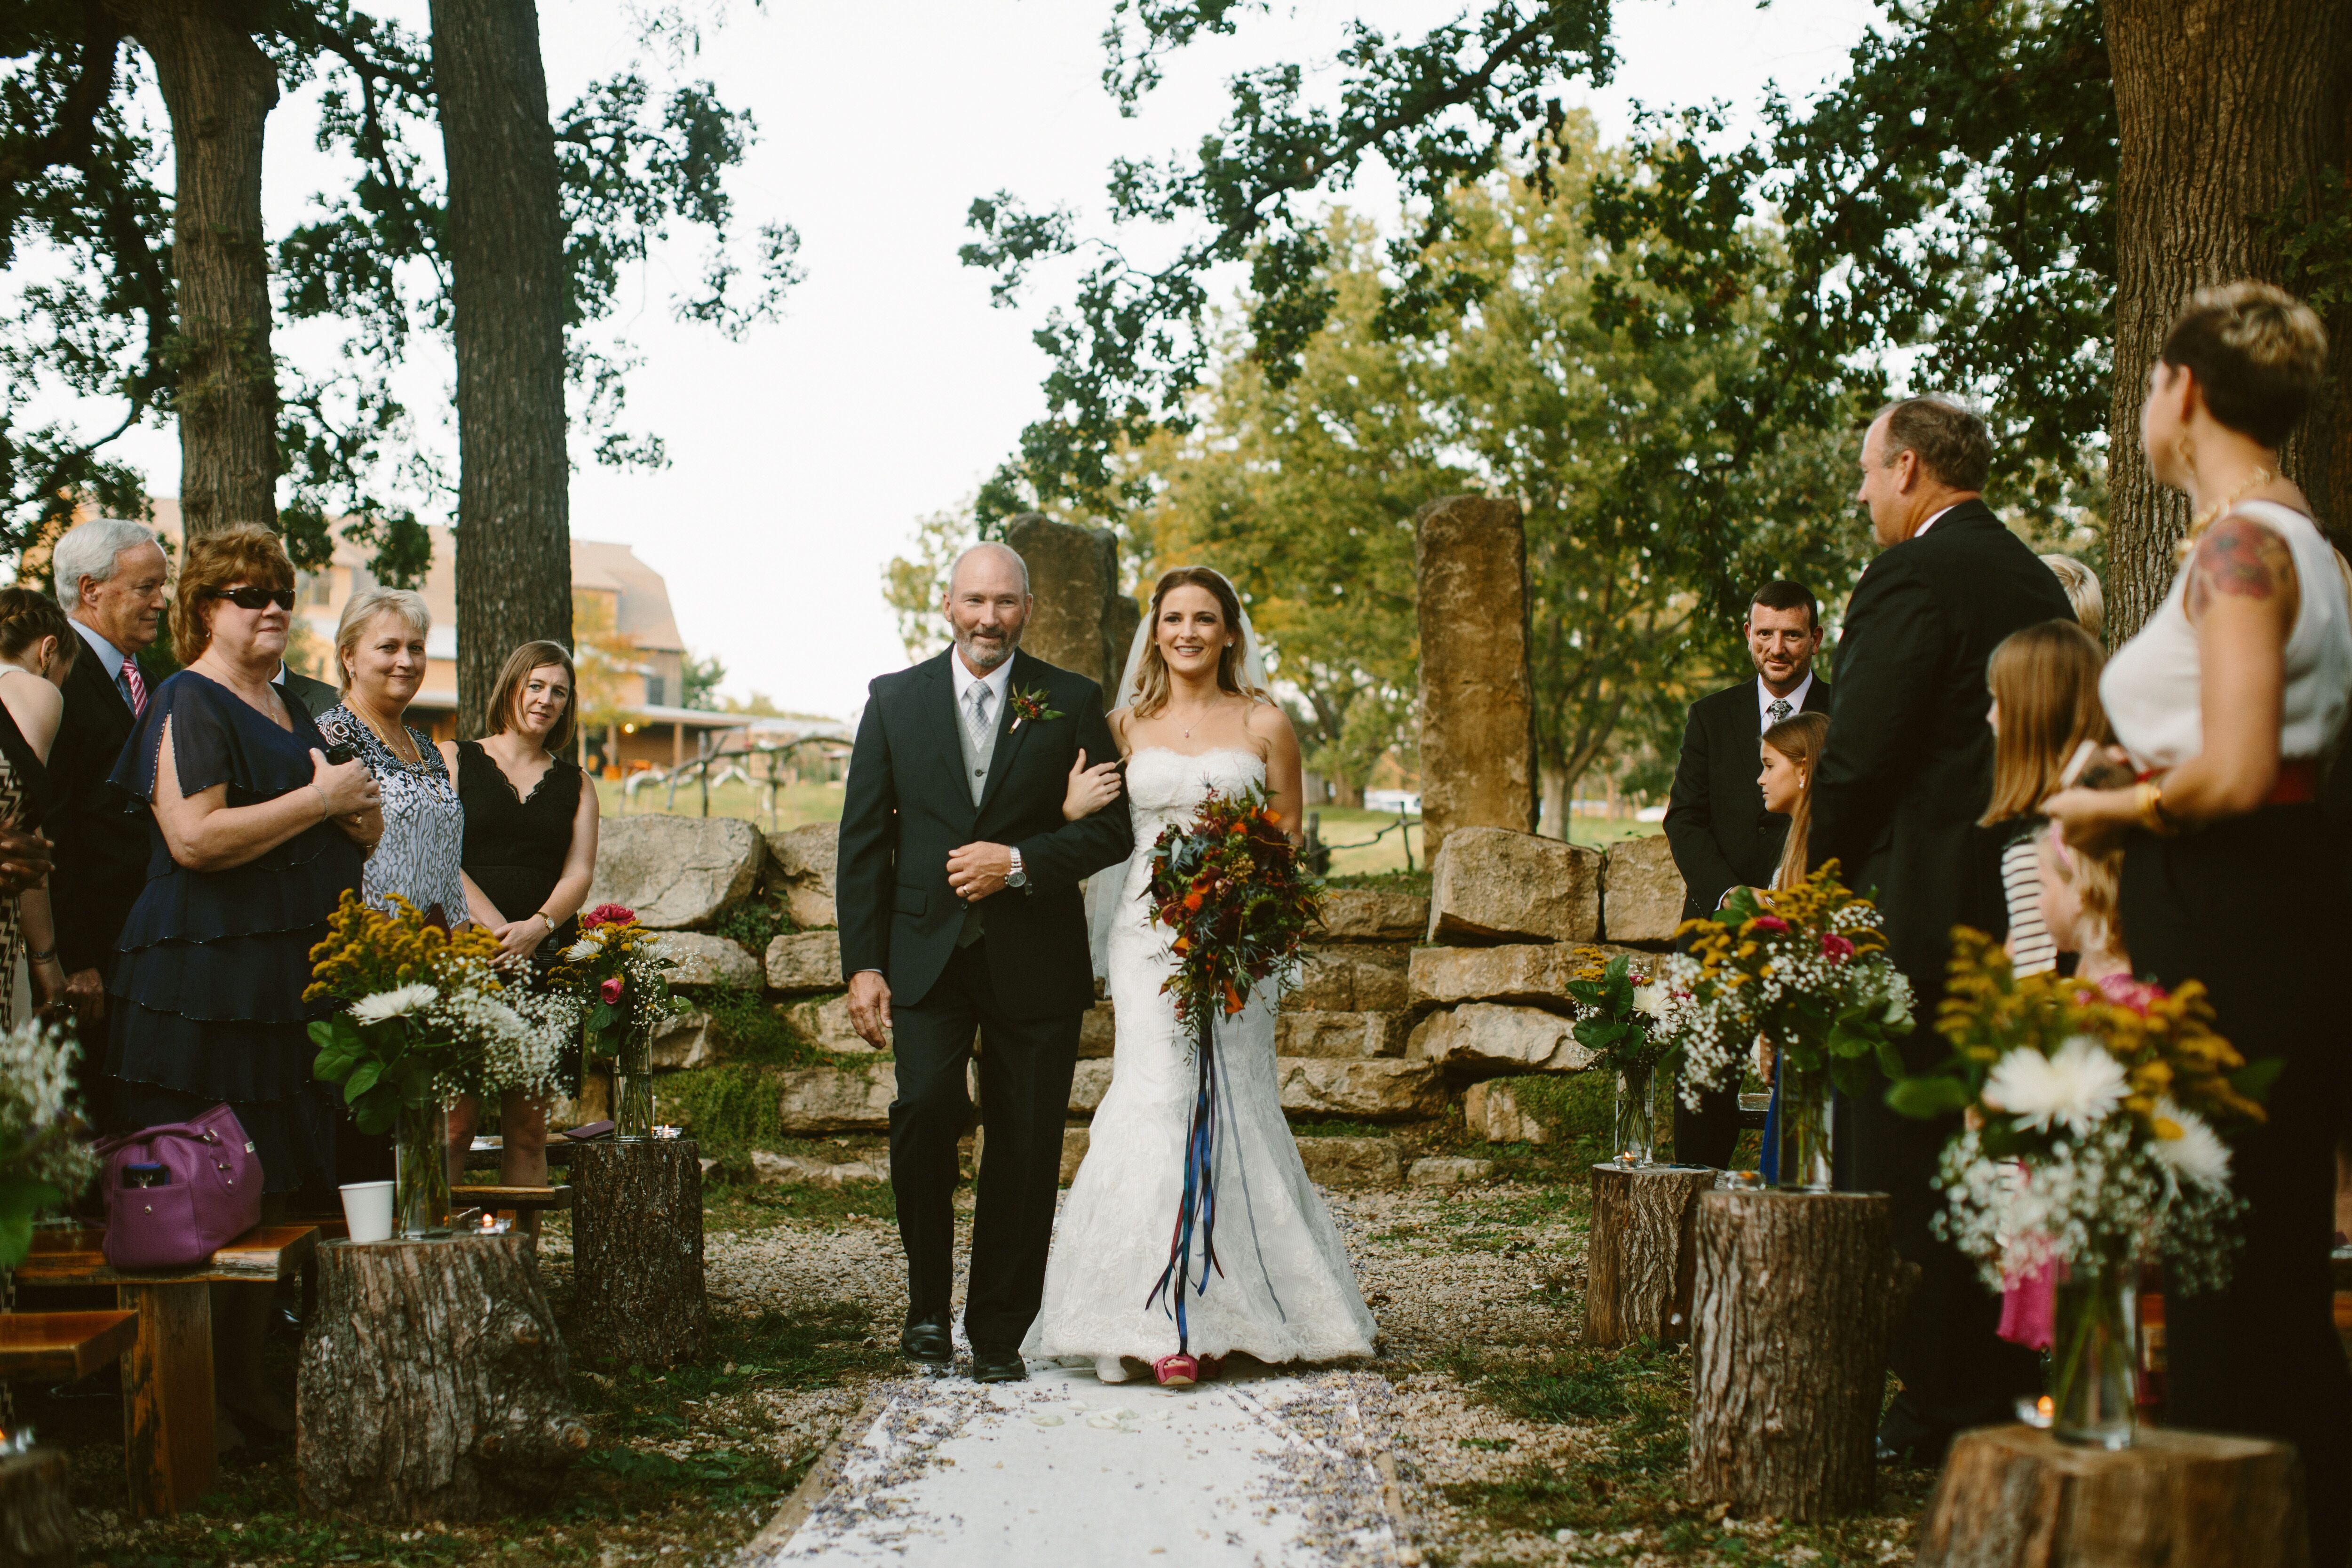 Wedding reception venues in wichita ks the knot circle s ranch country inn junglespirit Image collections